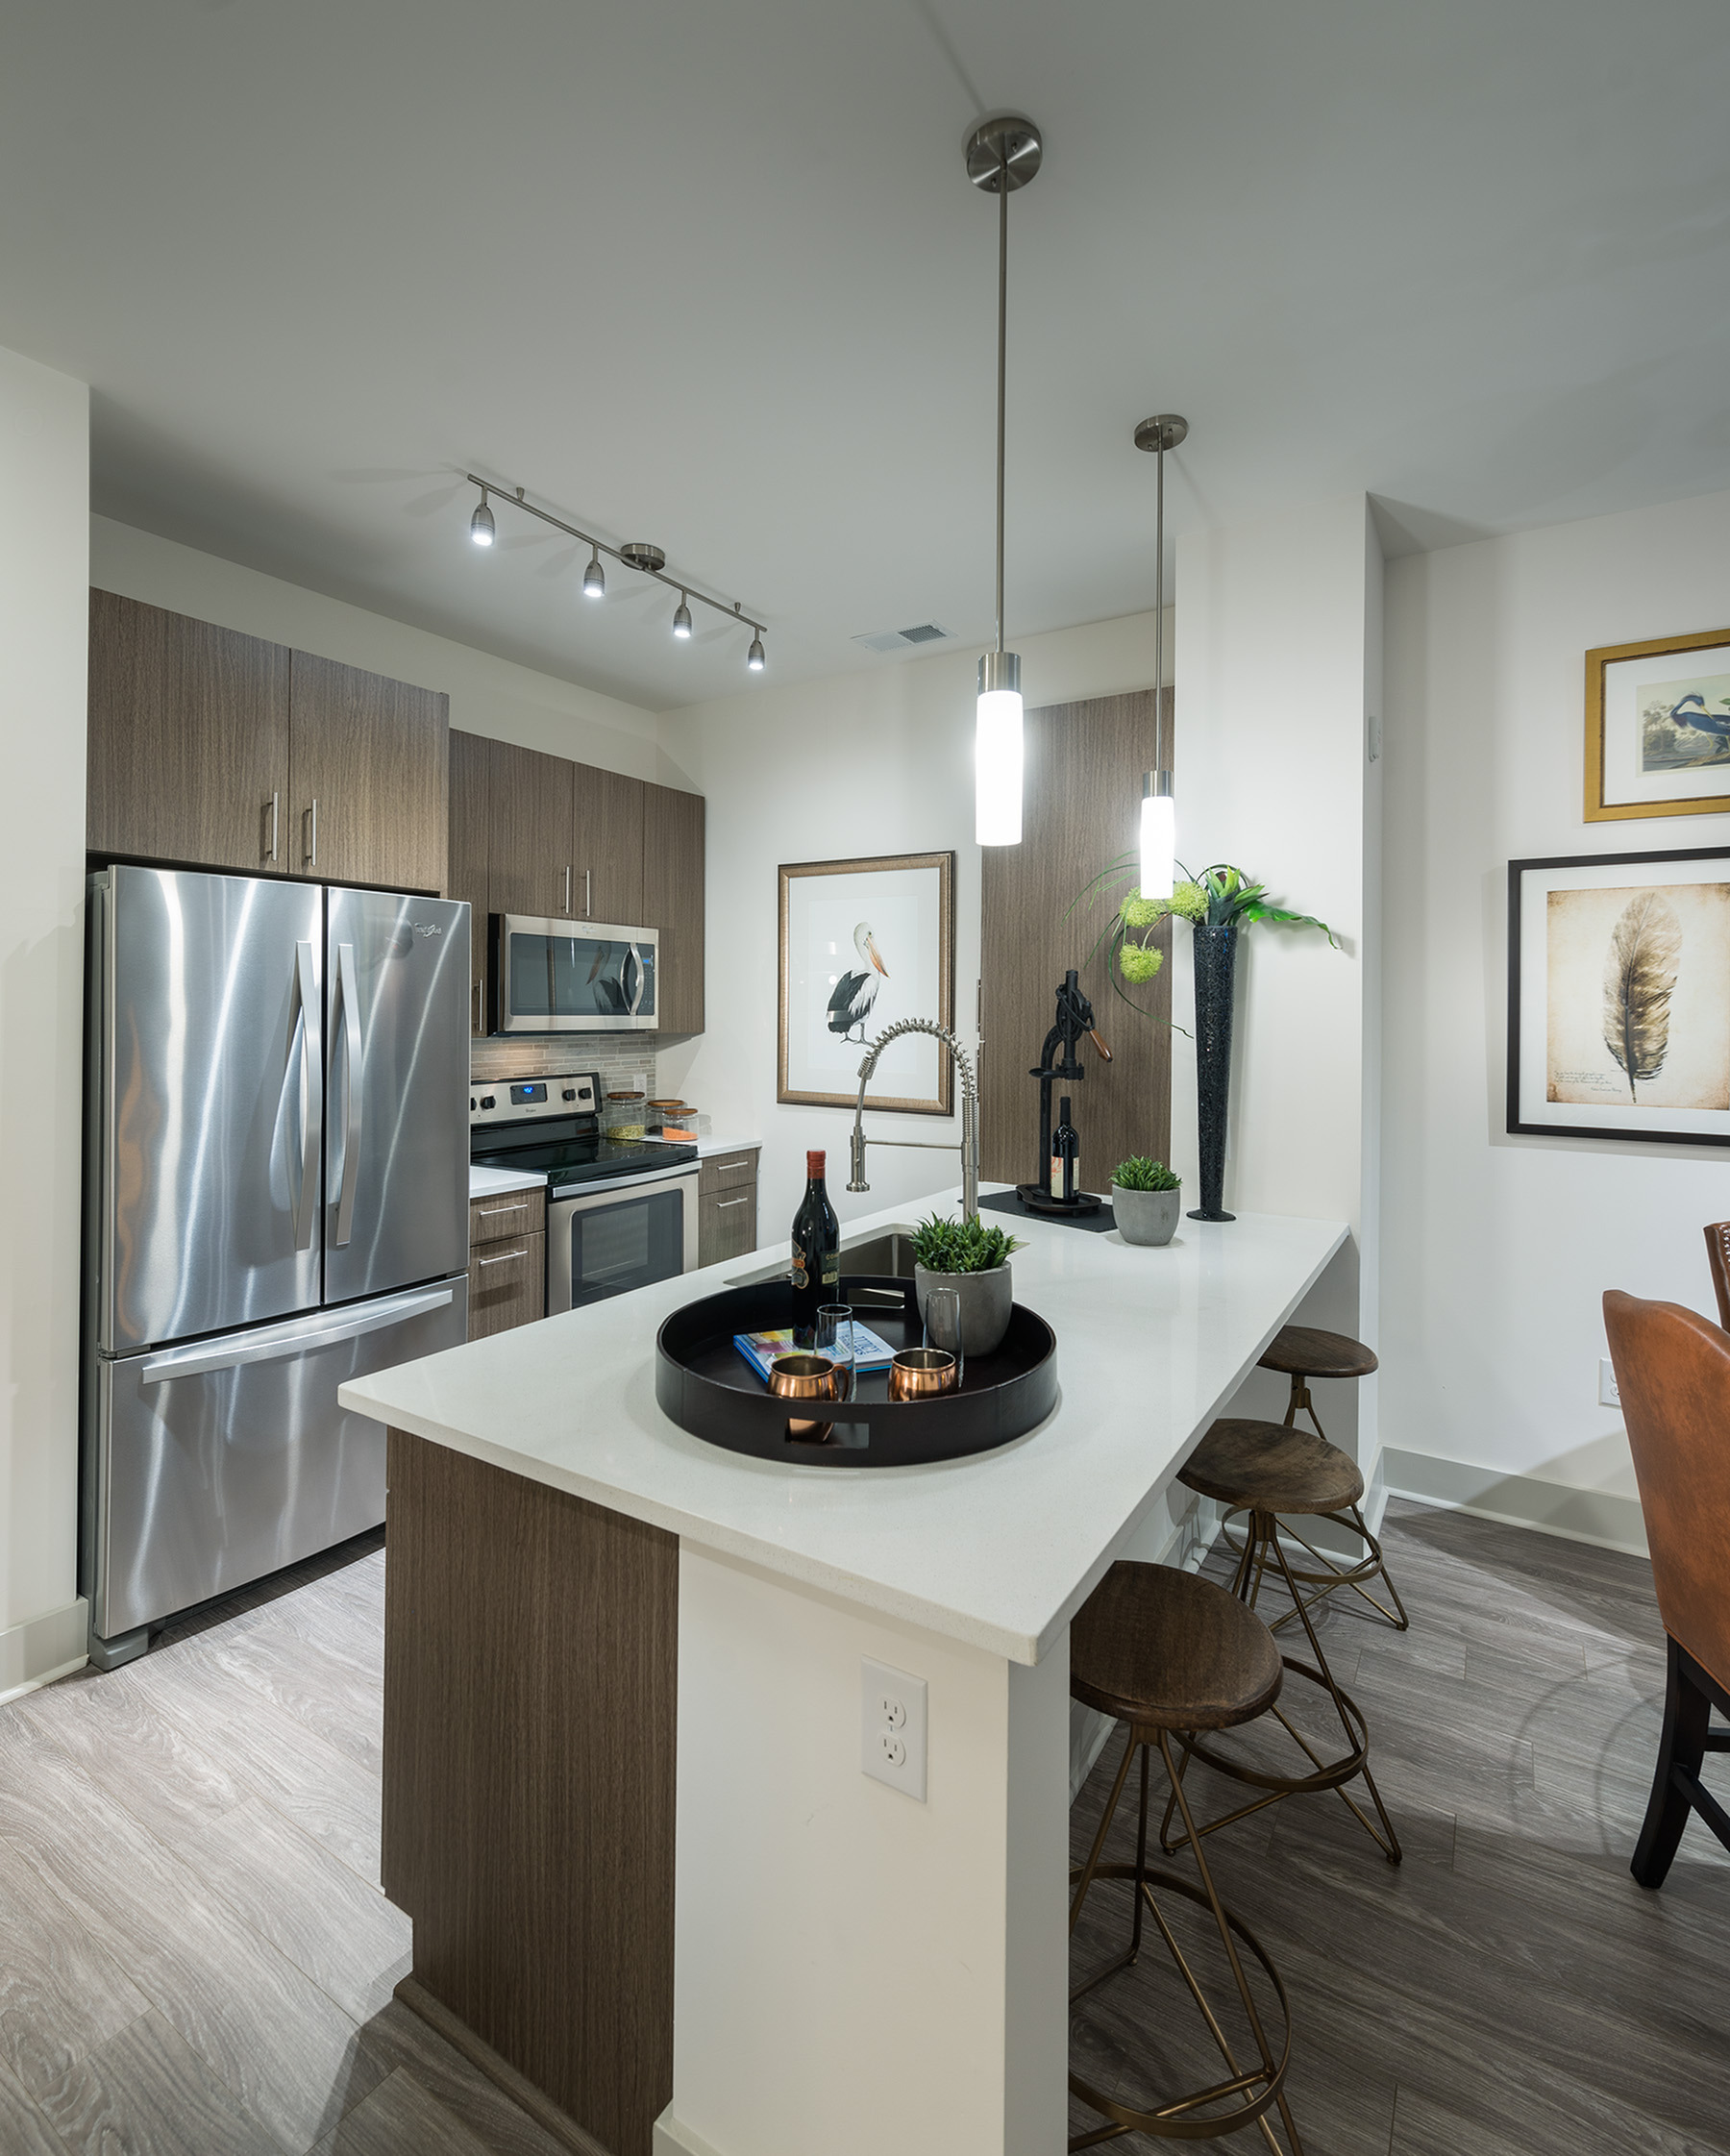 Image of Gourmet chef kitchen with stainless steel appliances for Hanover North Broad